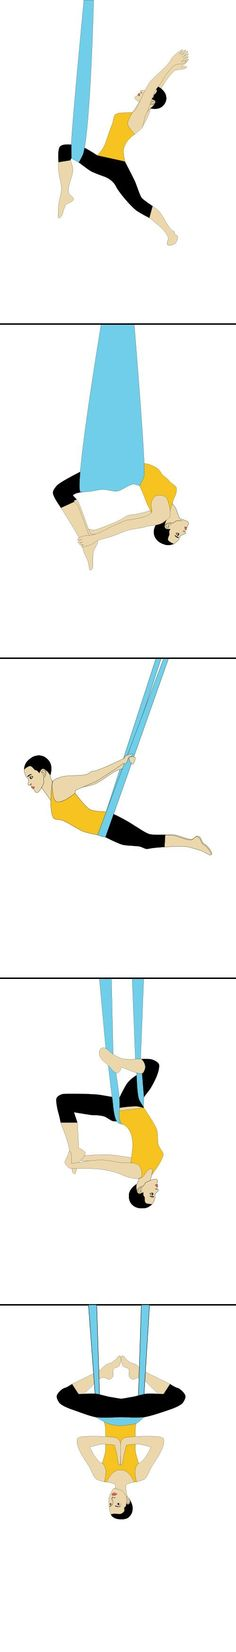 Aerial Yoga Poses, Pose Guide! Antigravity Yoga – Get the at Home Aerial Yoga Kit on Amazon.com!